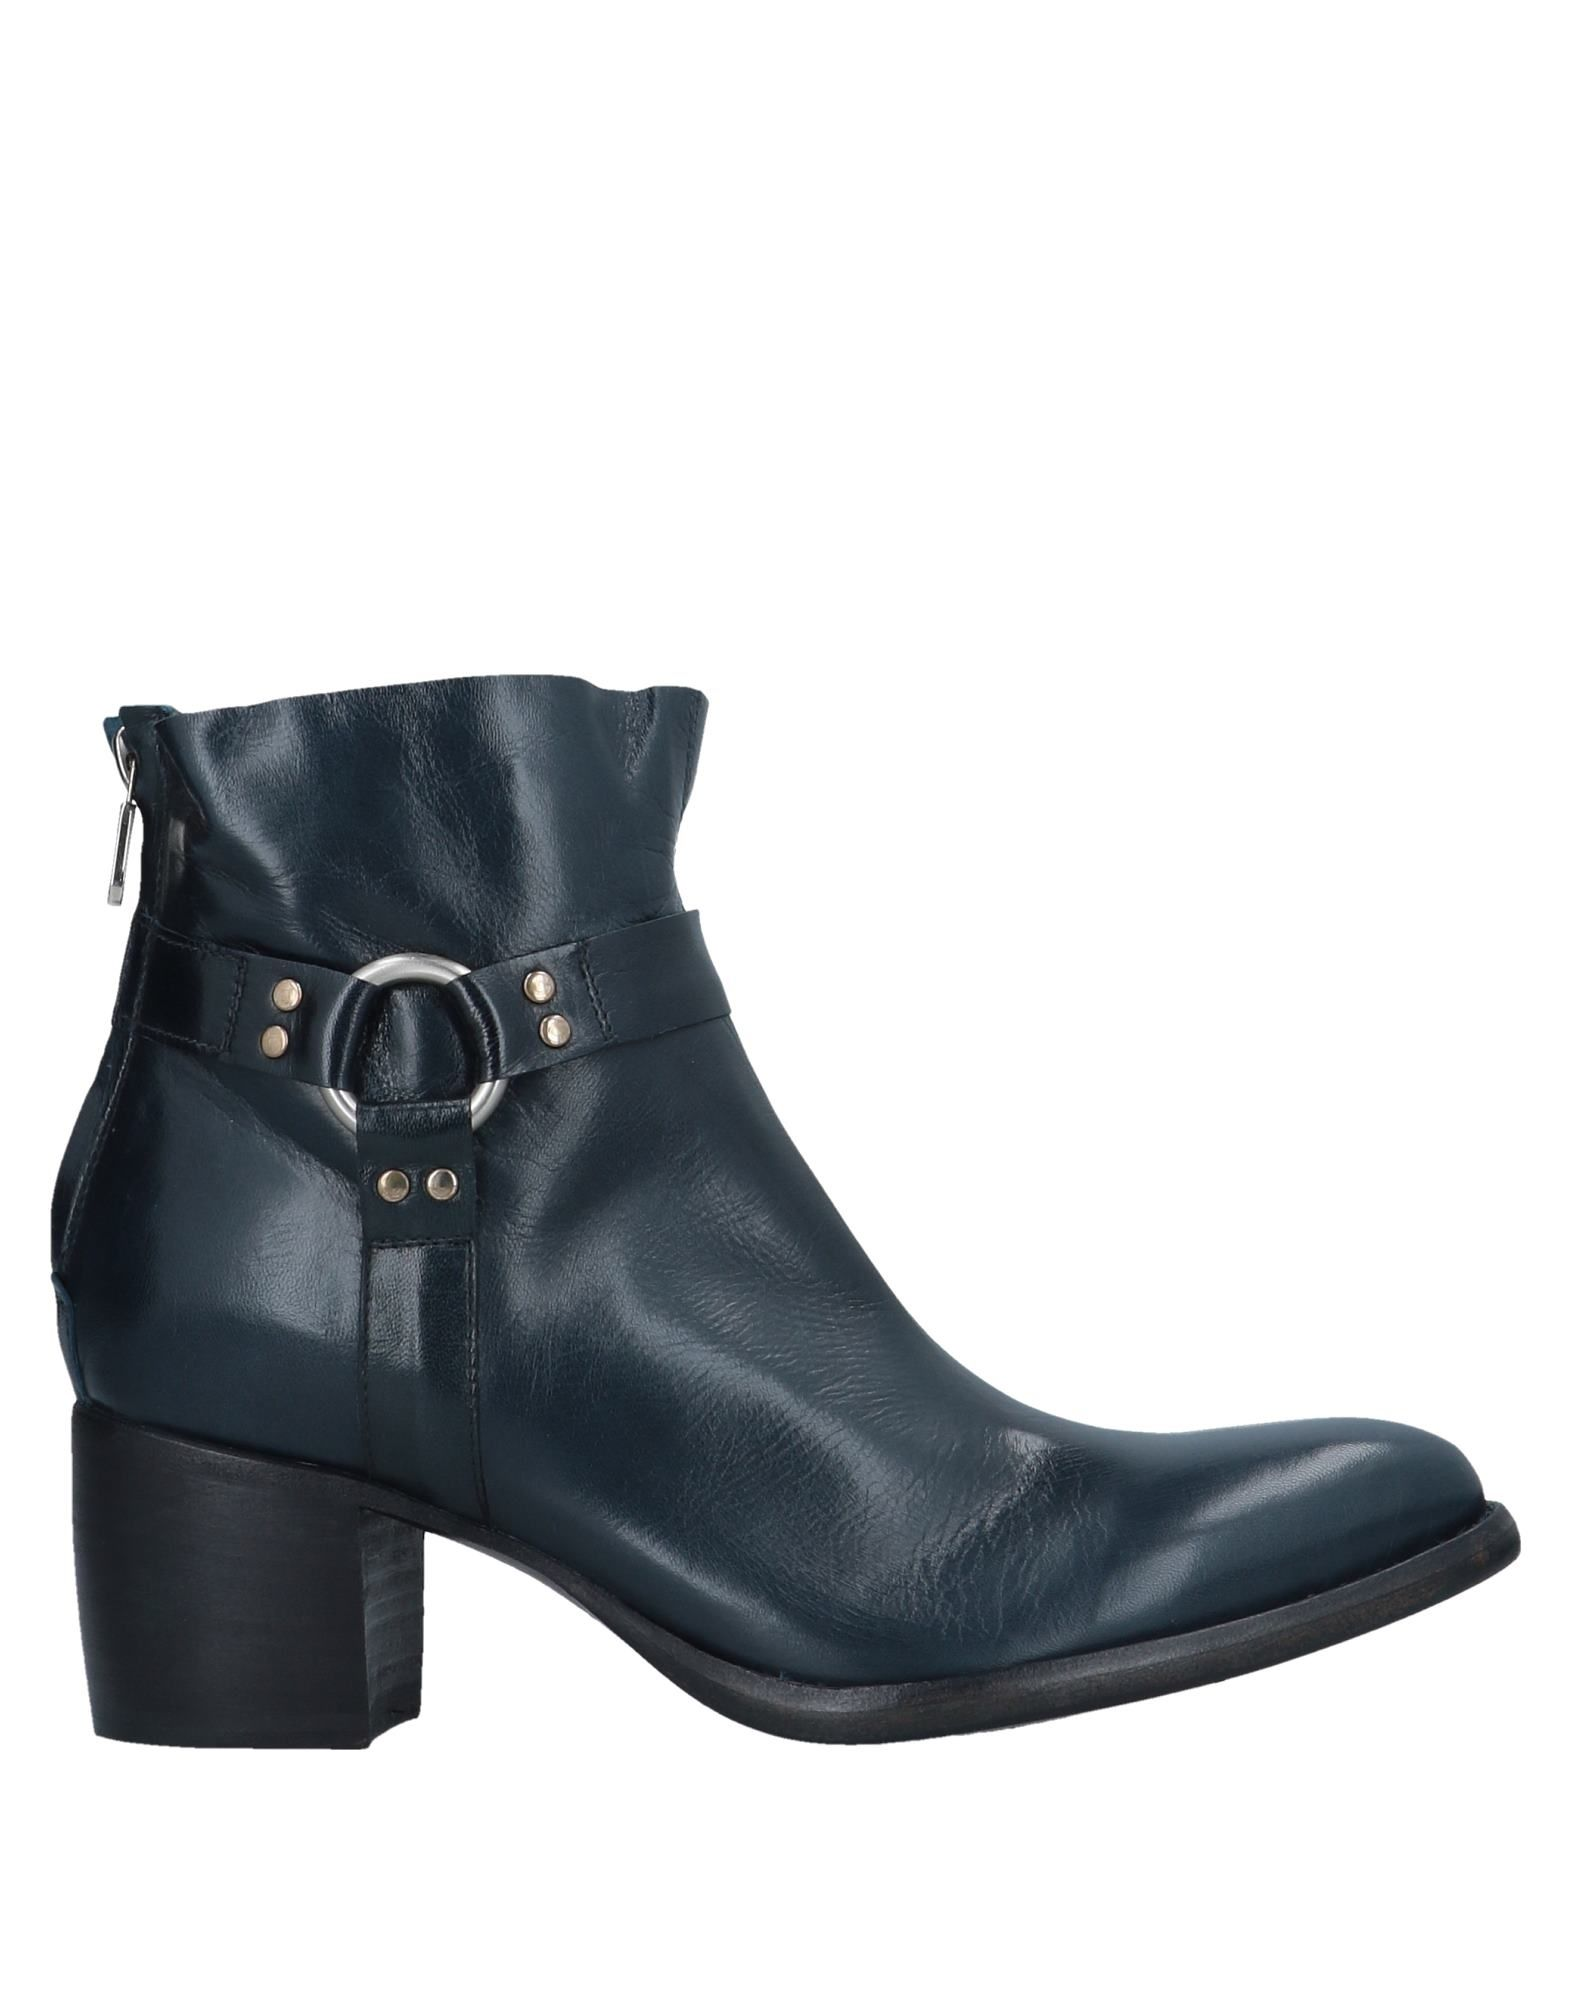 Rocco P. Ankle Boot - Women Rocco P. P. Rocco Ankle Boots online on  Australia - 11536843JN 42fdd7